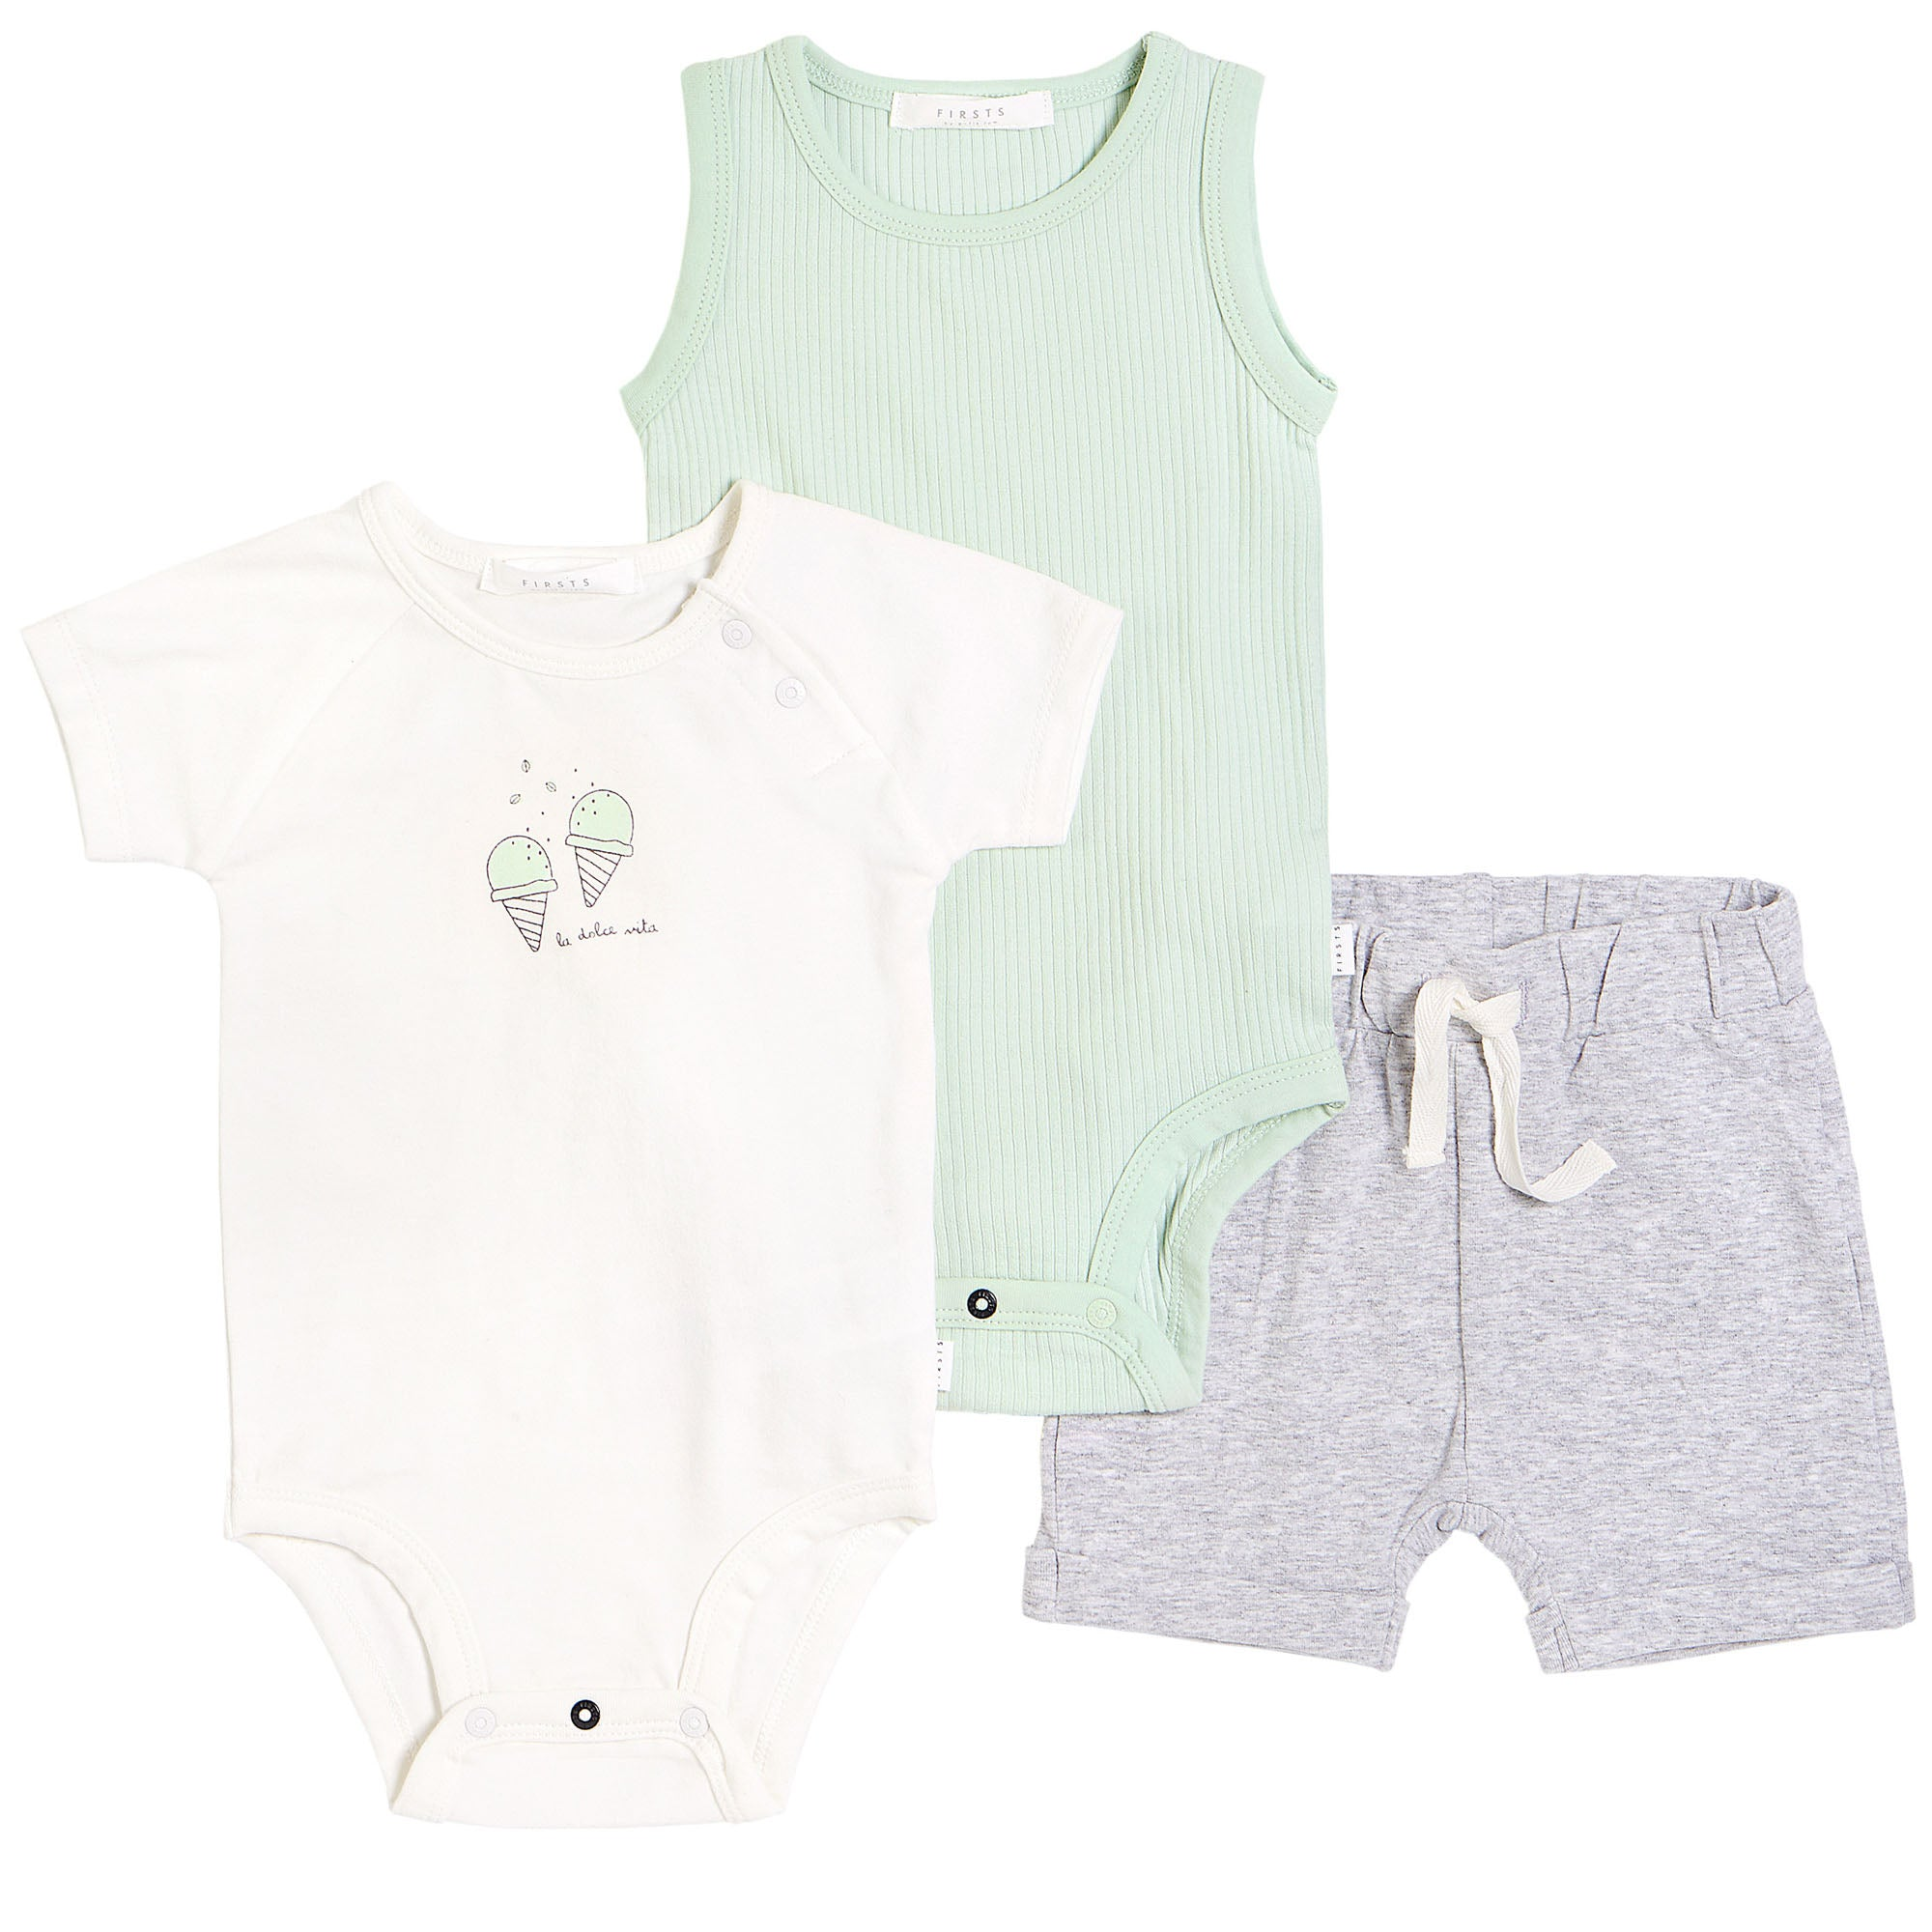 FIRSTS by Petit Lem Organic Baby Summer Outfit Set (3-Piece) - Gelato